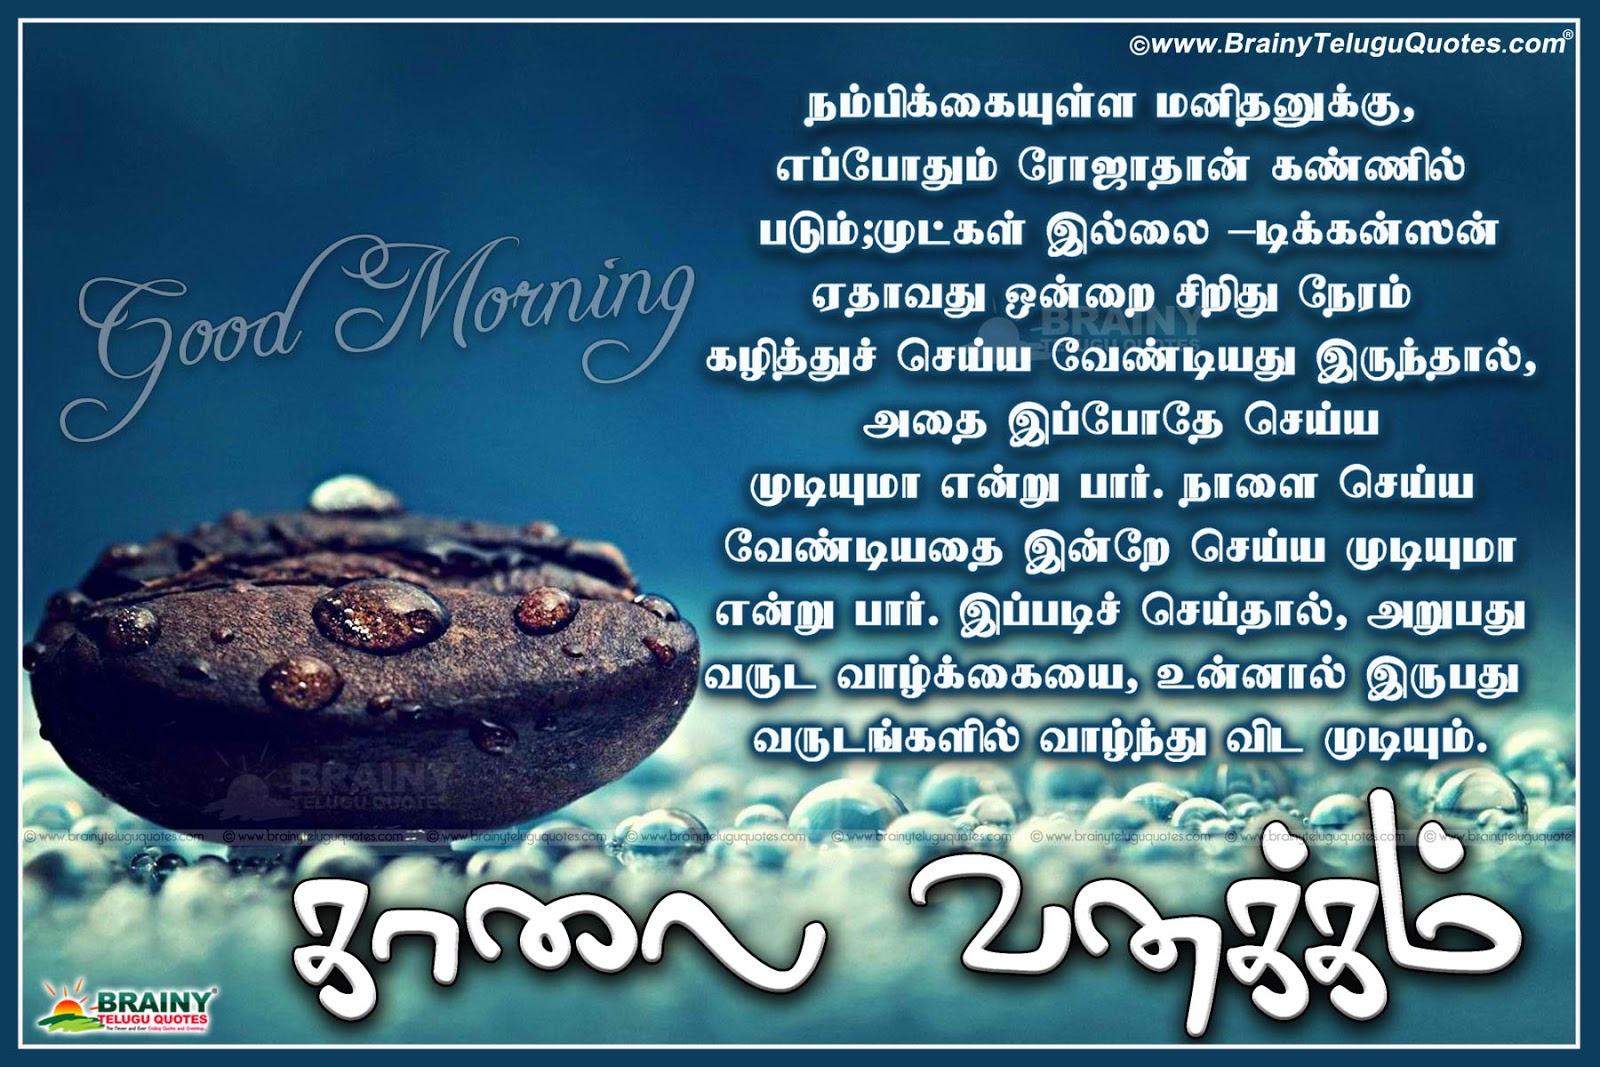 Good Morning Quotes In Kannada Language Good Quotes